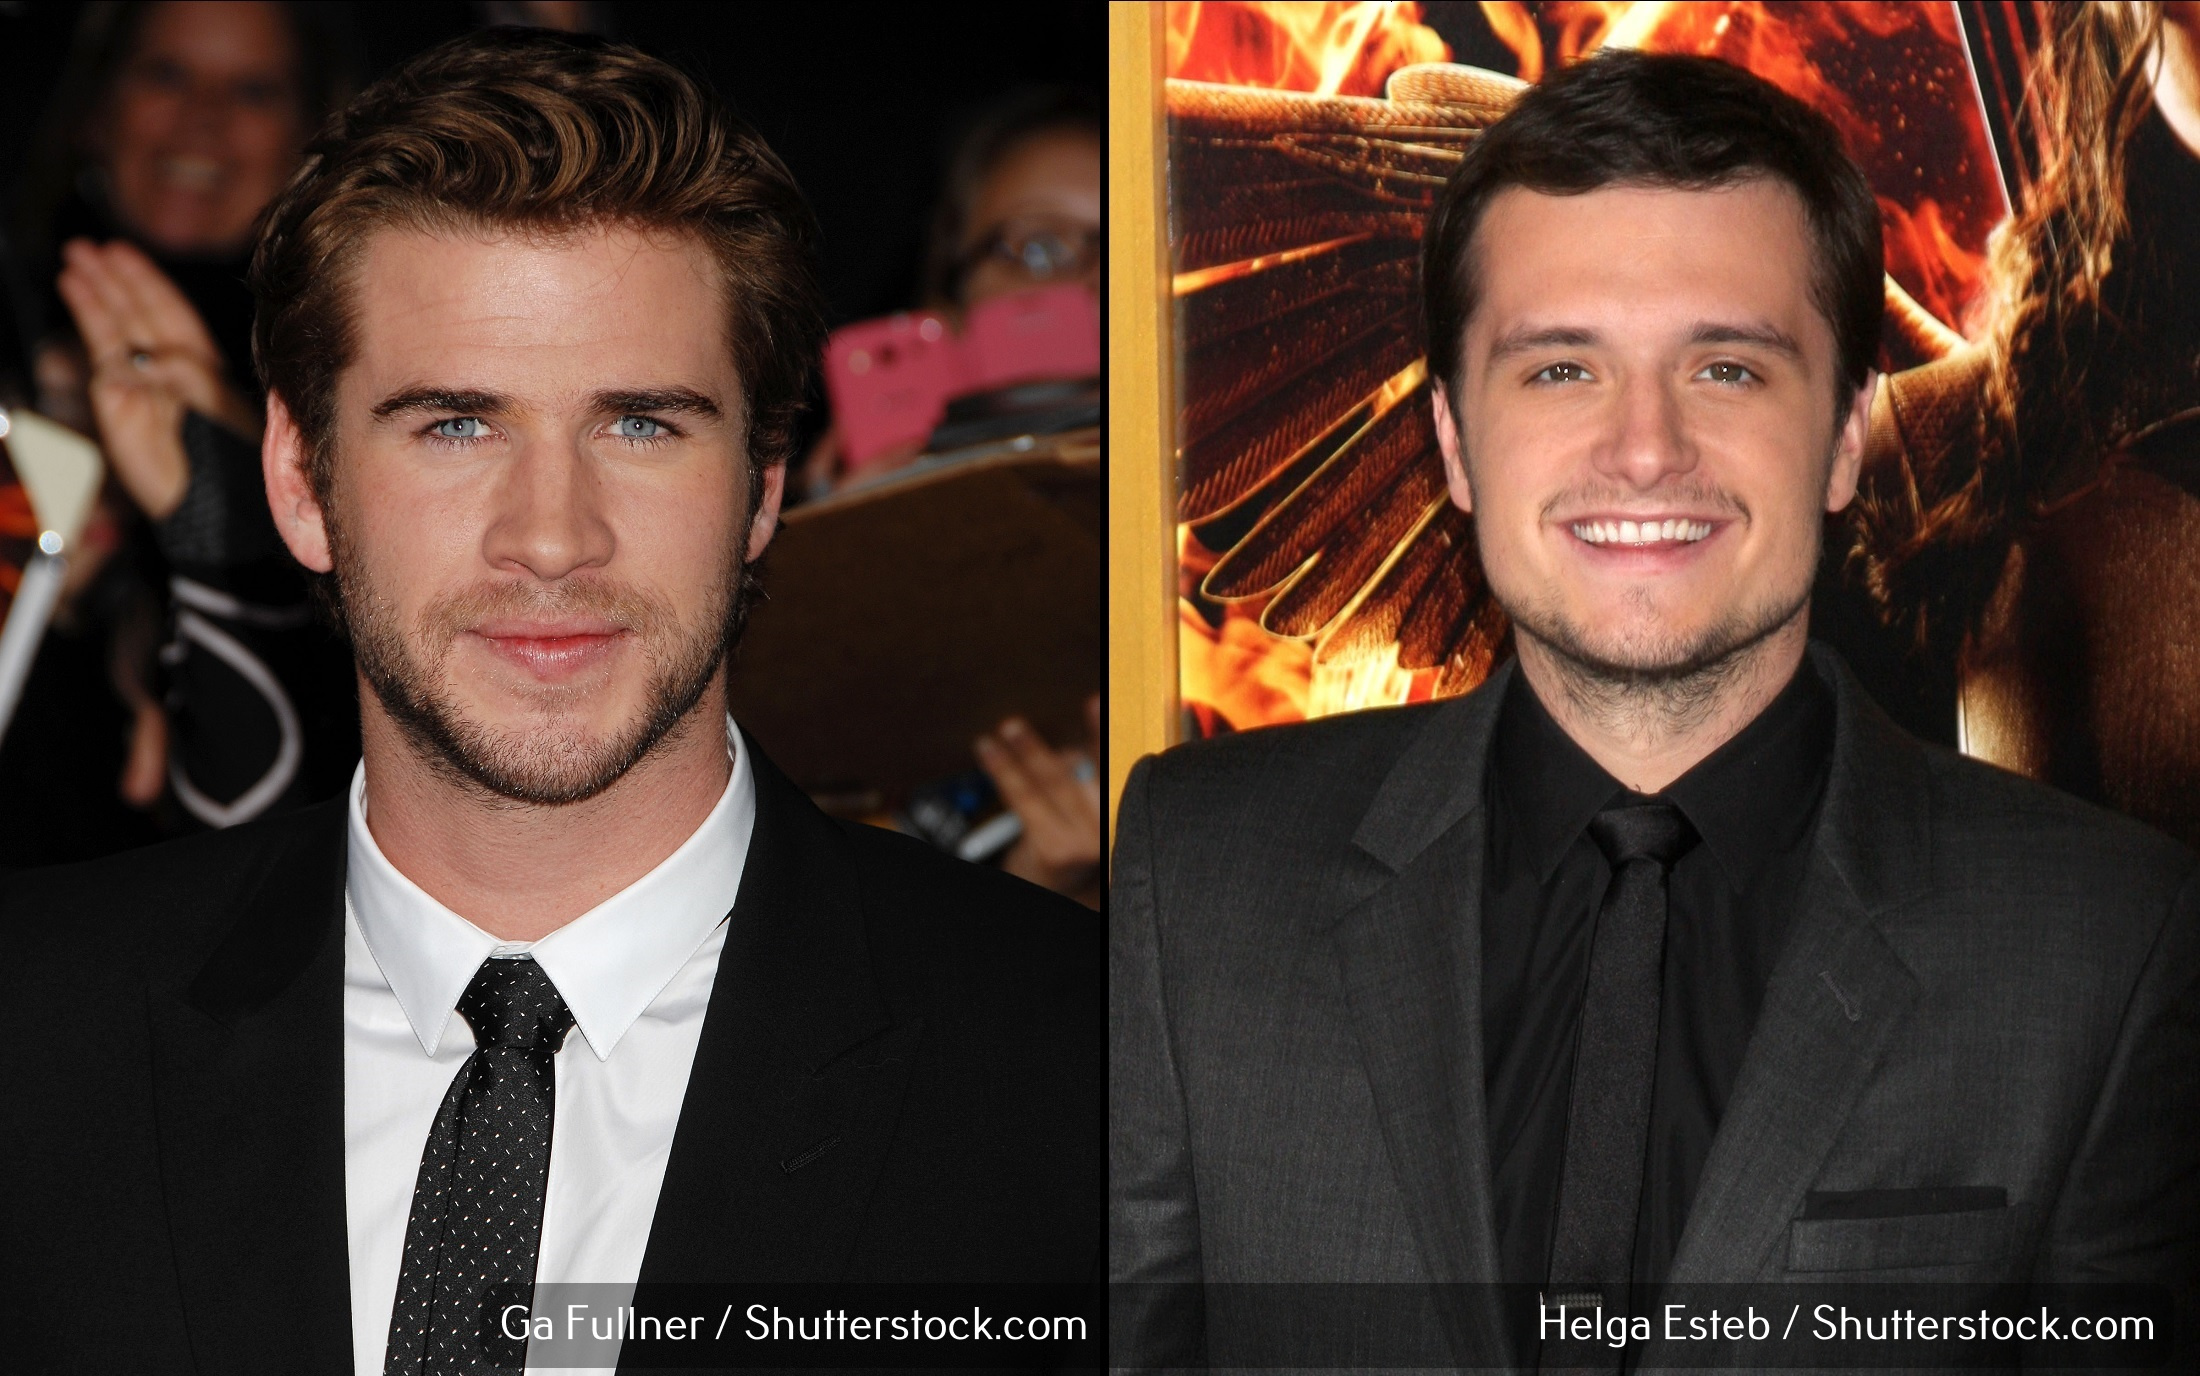 Hunger games mockingjay part 2 liam hemsworth net worth vs josh hunger games mockingjay part 2 liam hemsworth net worth vs josh hutcherson net worth gobankingrates ccuart Image collections